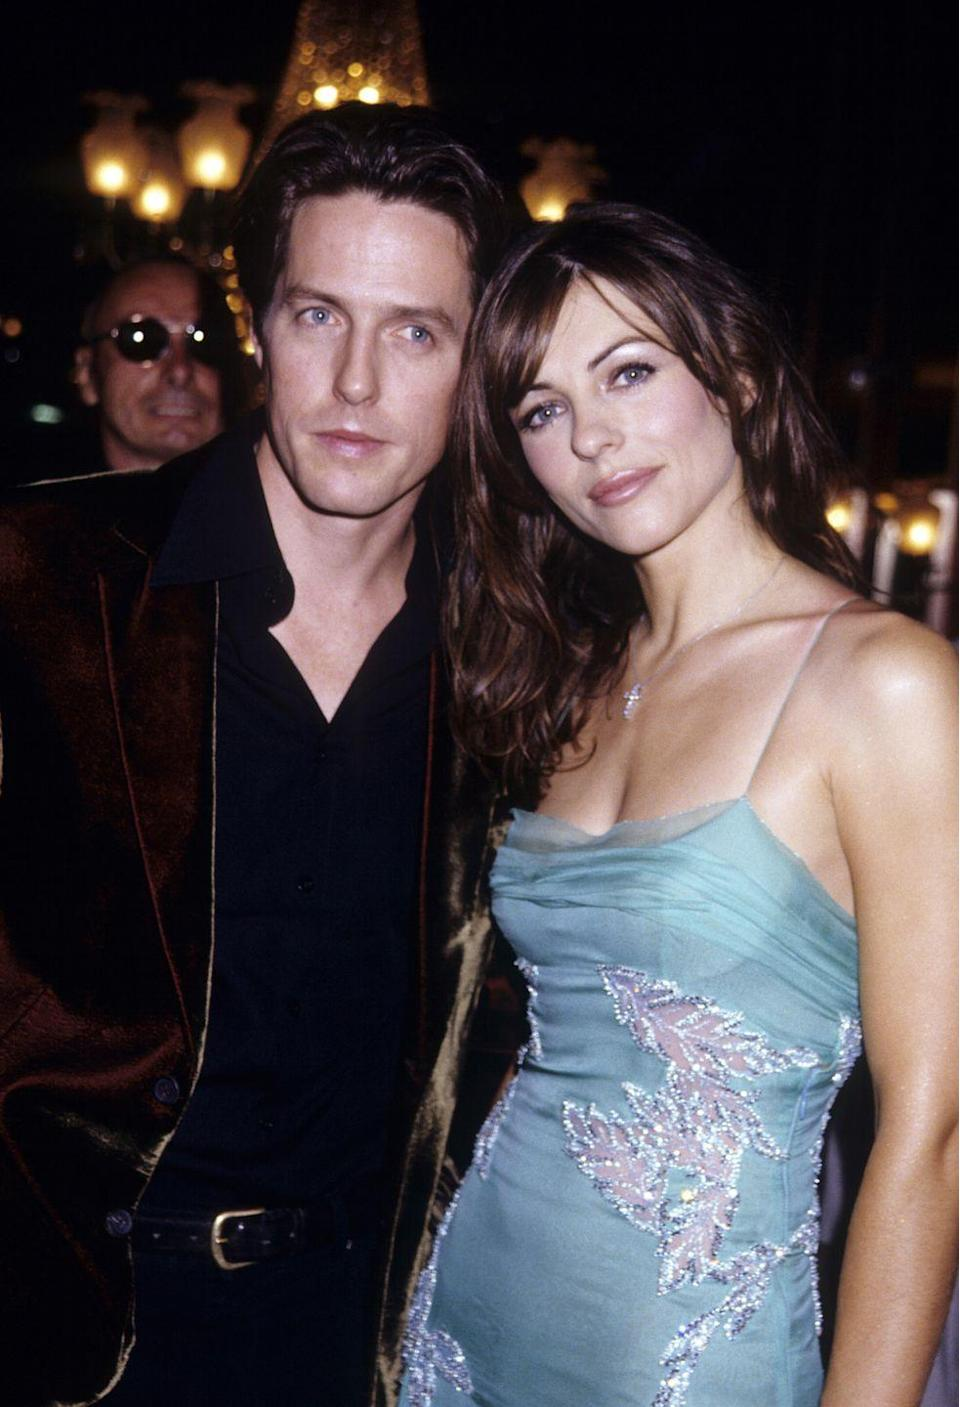 "<p>In 1995, Hugh Grant was <a href=""https://www.theguardian.com/film/from-the-archive-blog/2015/jun/26/hugh-grant-arrest-prostitute-divine-brown-20-1995"" rel=""nofollow noopener"" target=""_blank"" data-ylk=""slk:caught with a sex worker"" class=""link rapid-noclick-resp"">caught with a sex worker</a> named Divine Brown and arrested for ""lewd conduct"" in a public place. At the time, he was with his longtime partner, Elizabeth Hurley, who tried to work through the incident. She ended up leaving Grant five years later. </p>"